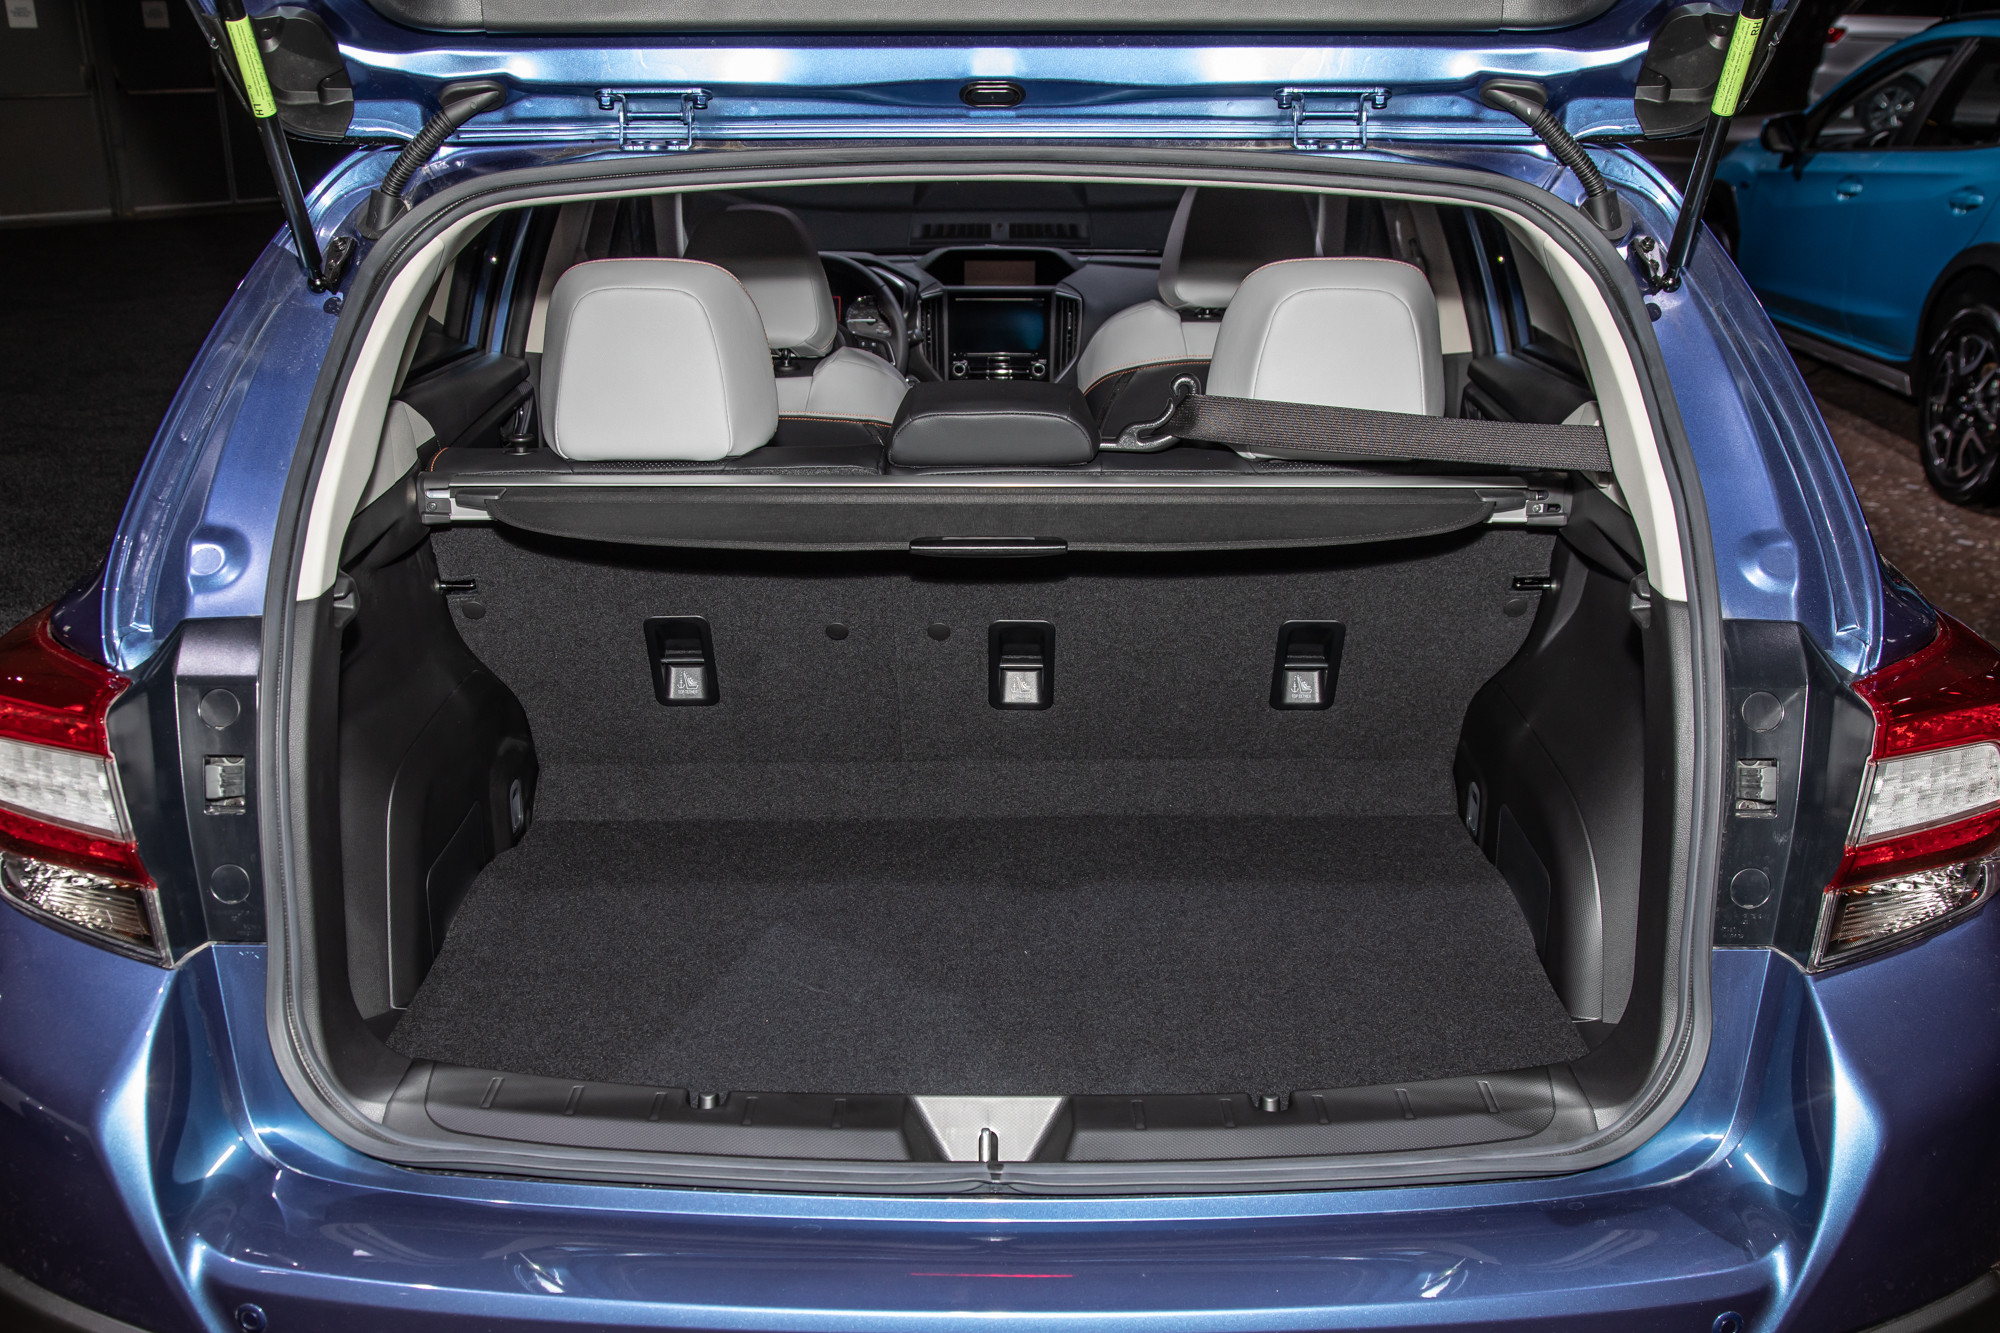 subaru-crosstrek-2020-09-interior--trunk.jpg